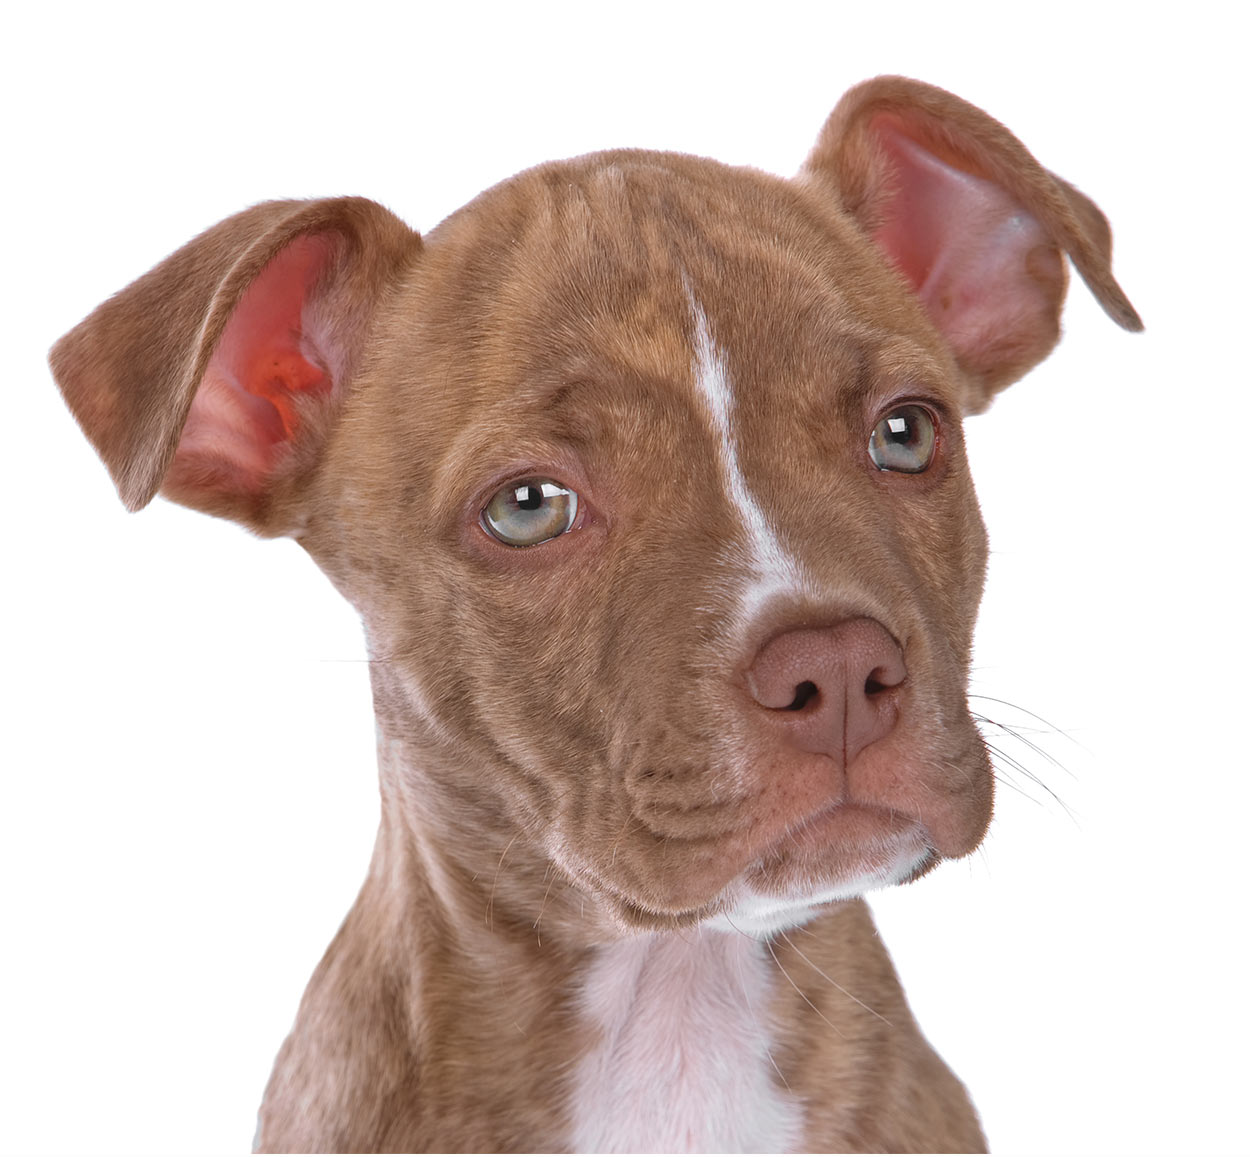 Red Nose Pitbull Dogs - 30 Things You Never Knew About Them!